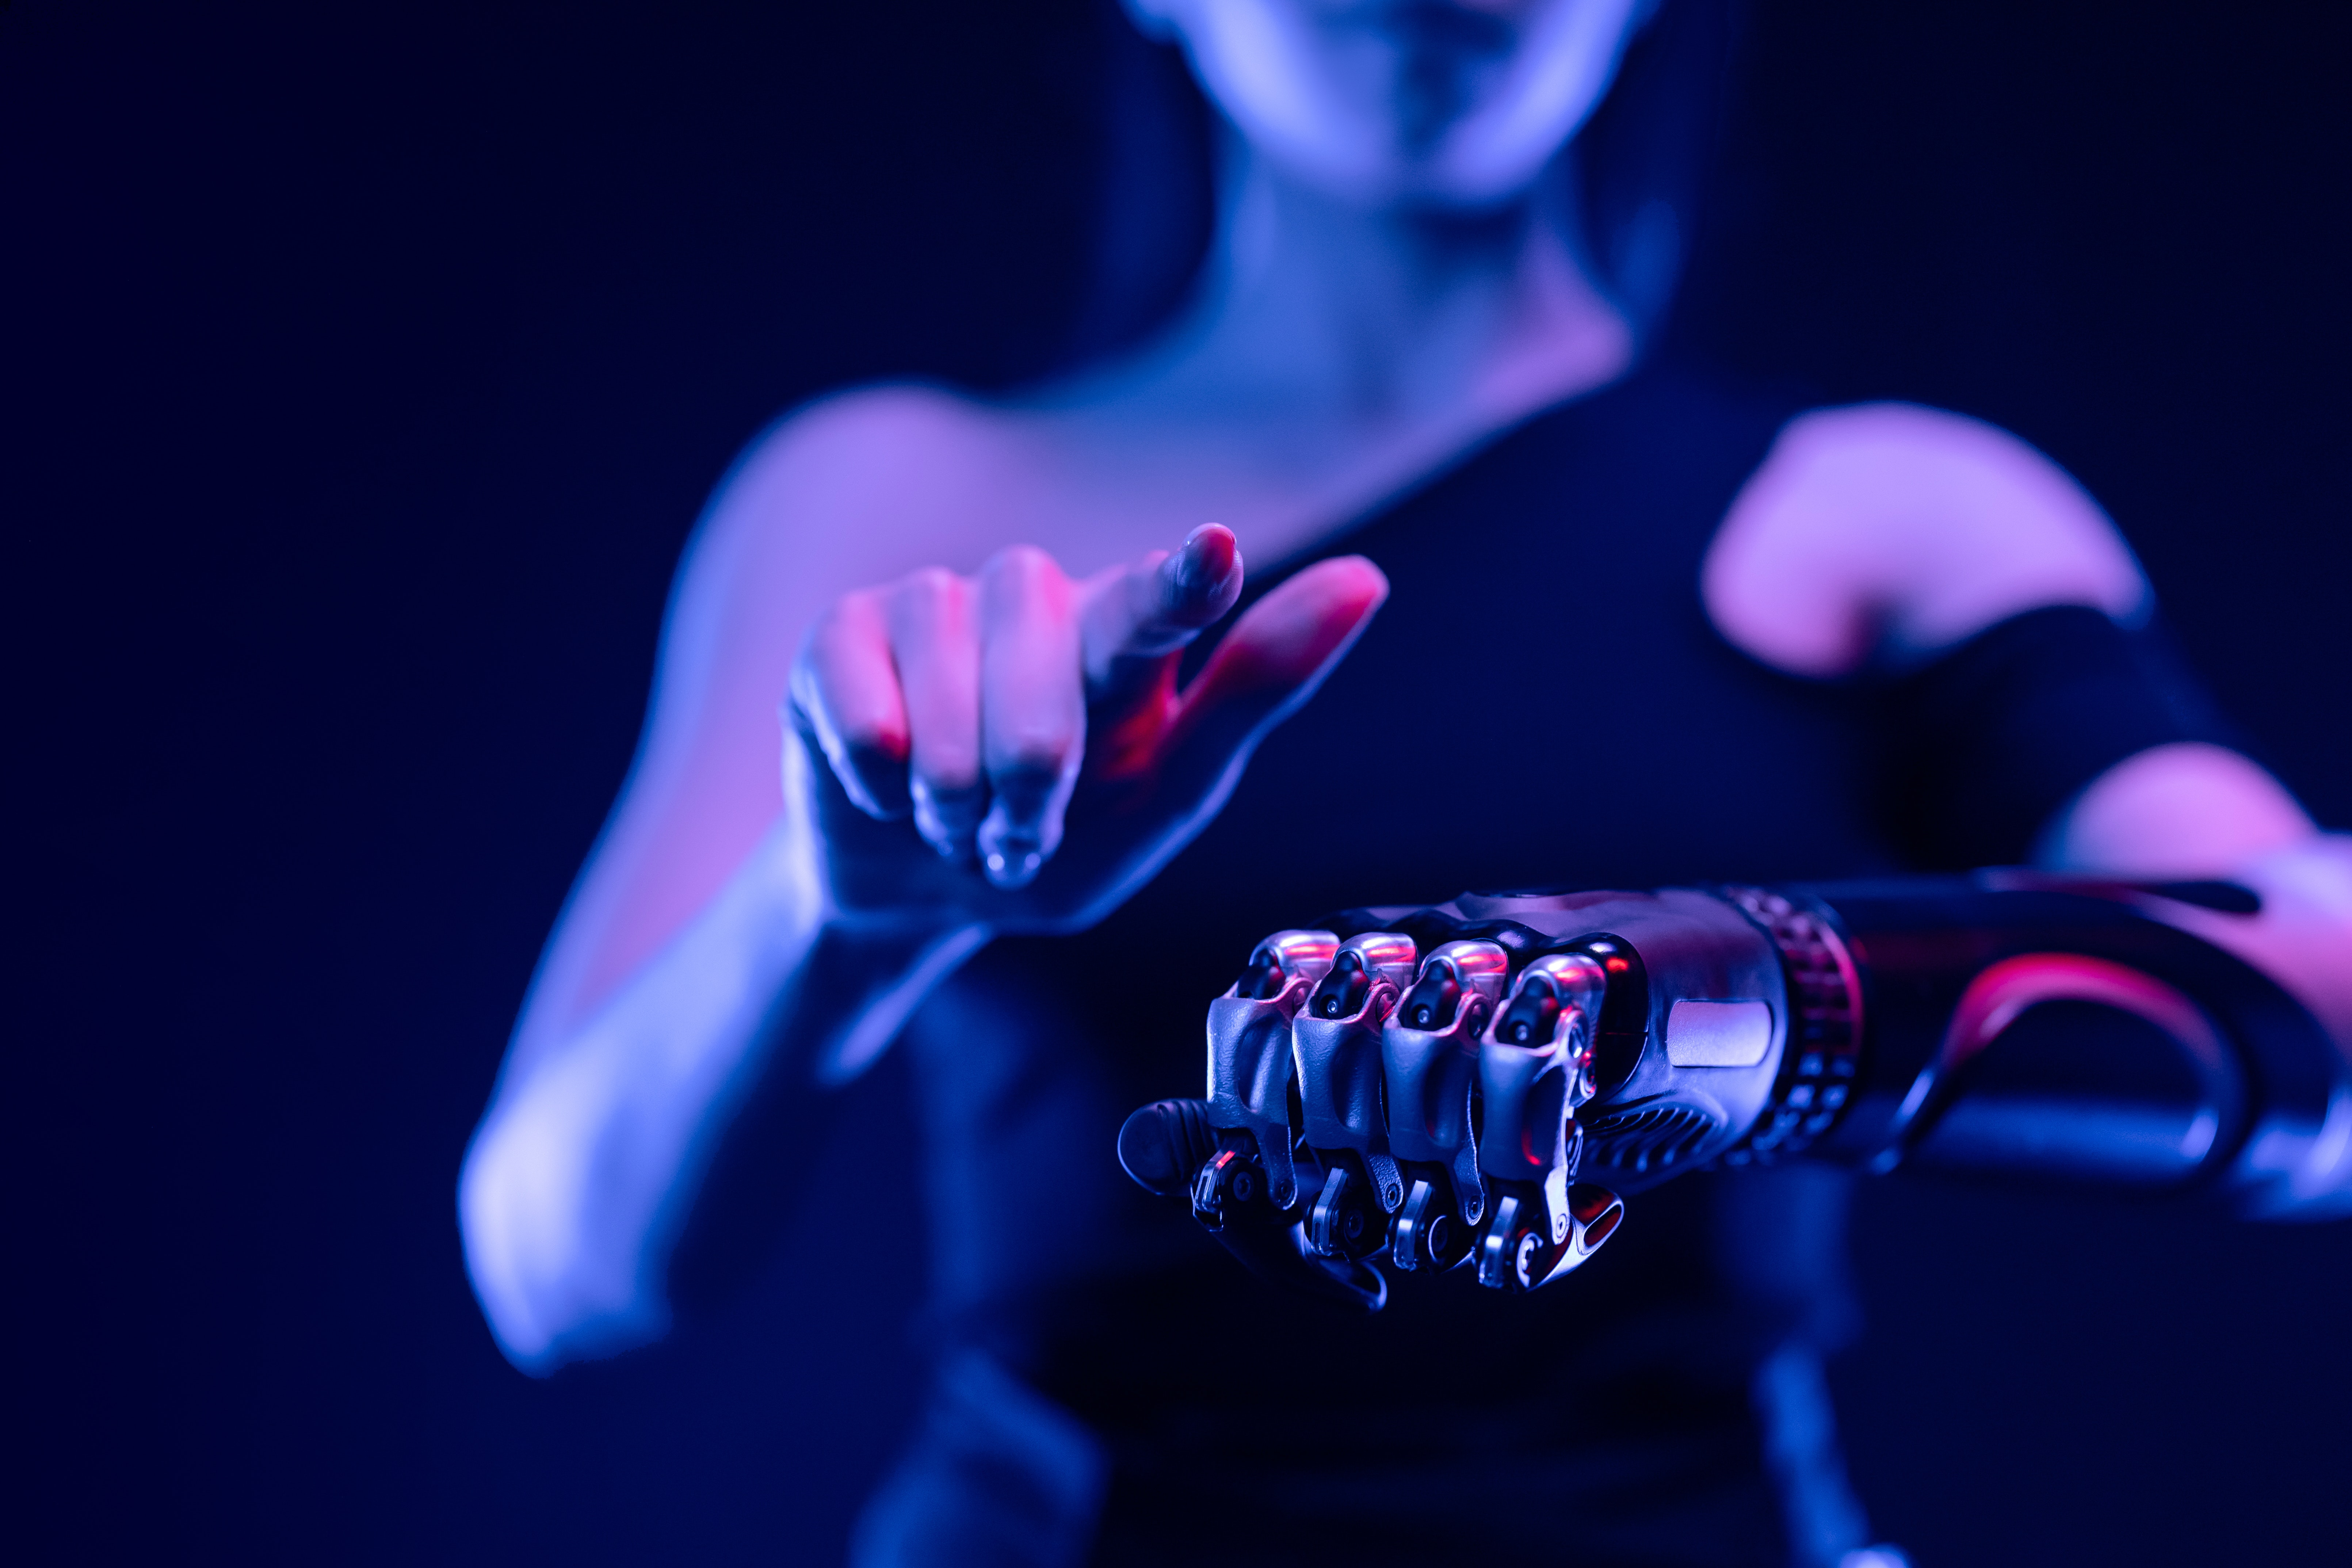 Robots, Androids and Cyborgs - What's the Difference?